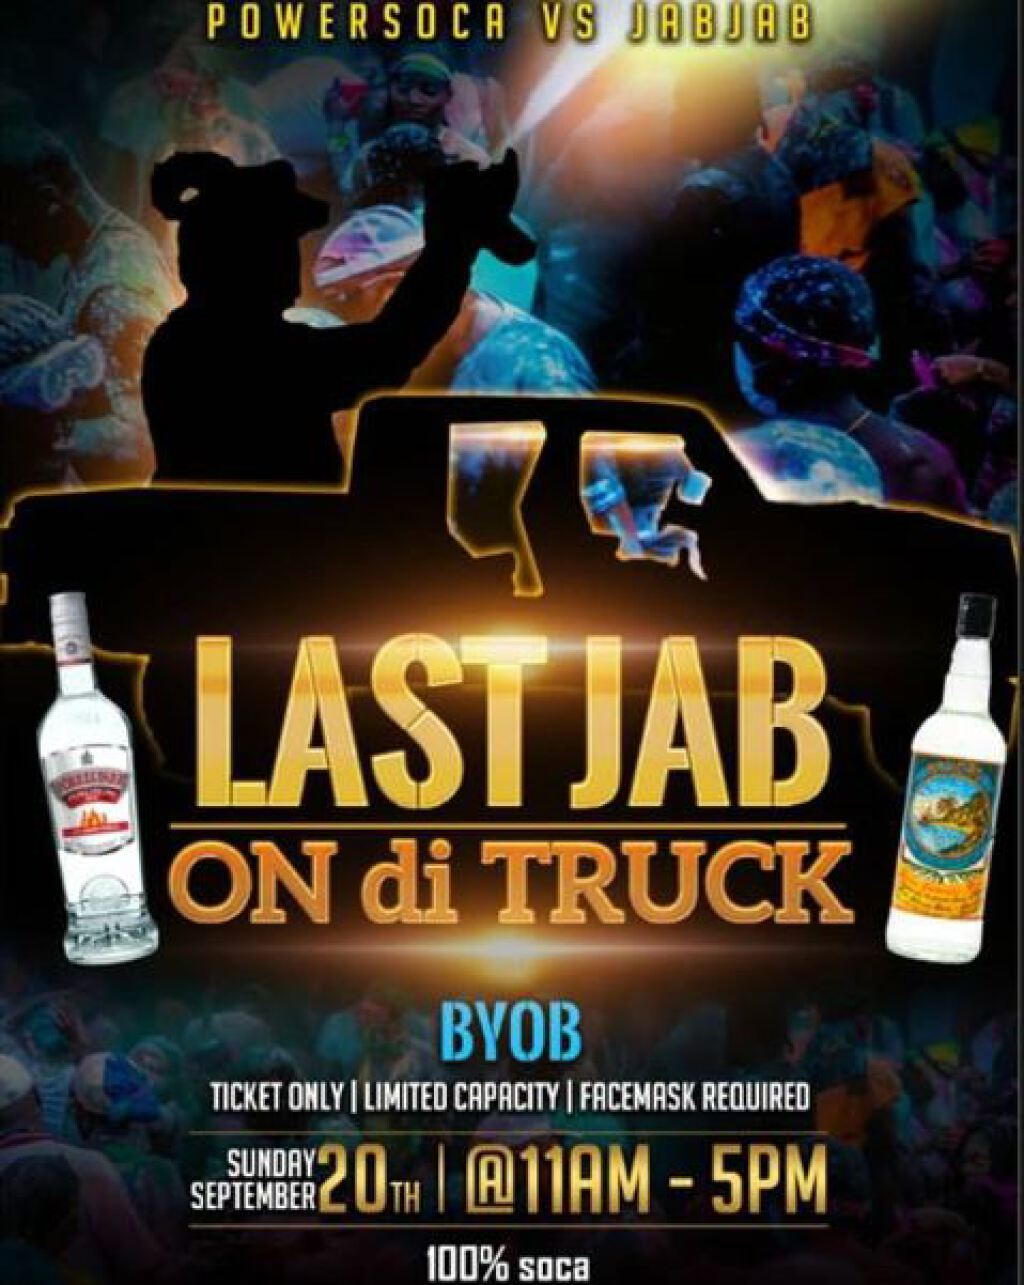 Last Jab On Di Truck flyer or graphic.